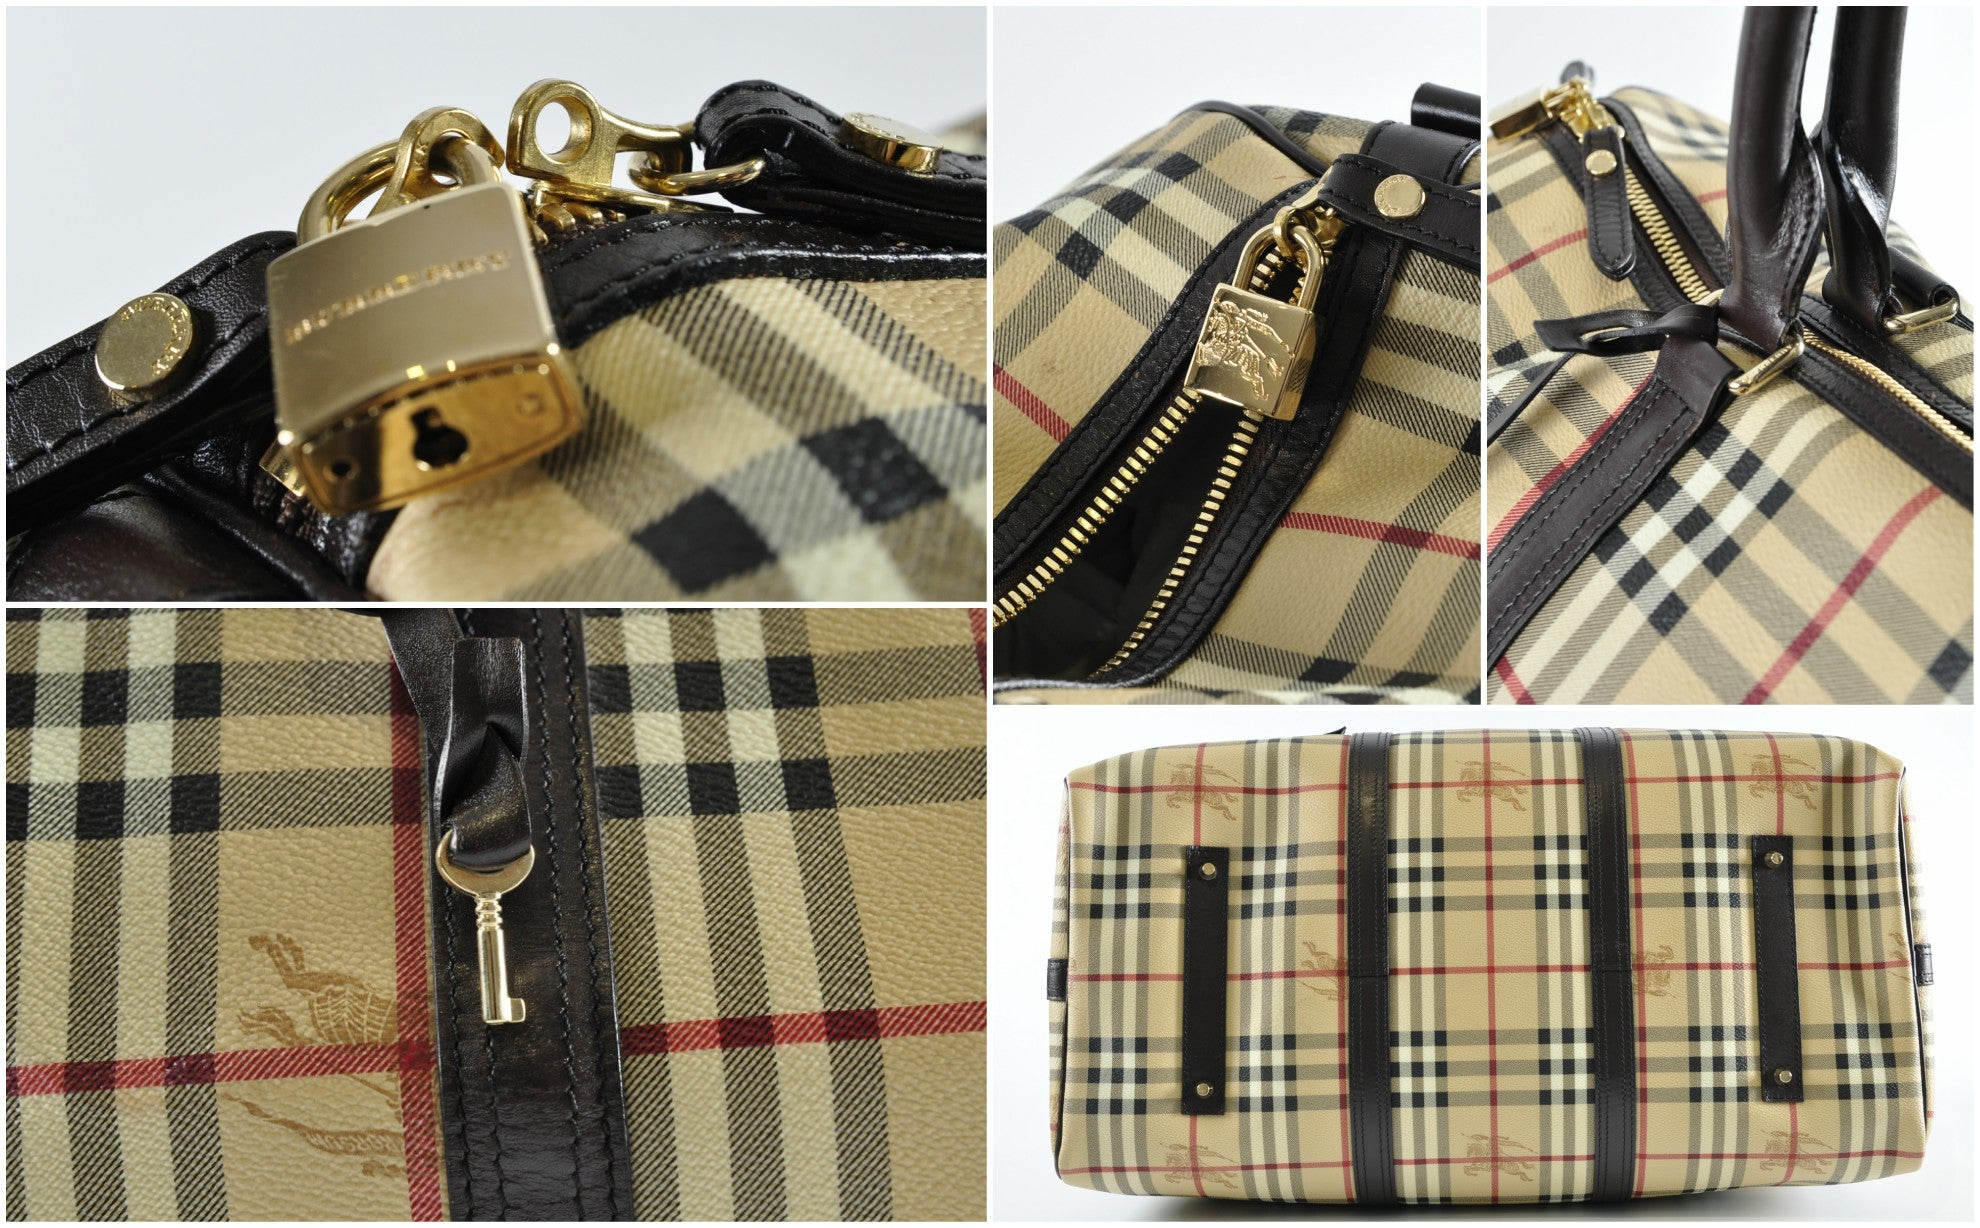 Burberry Nova Check Travel Bag - Glampot